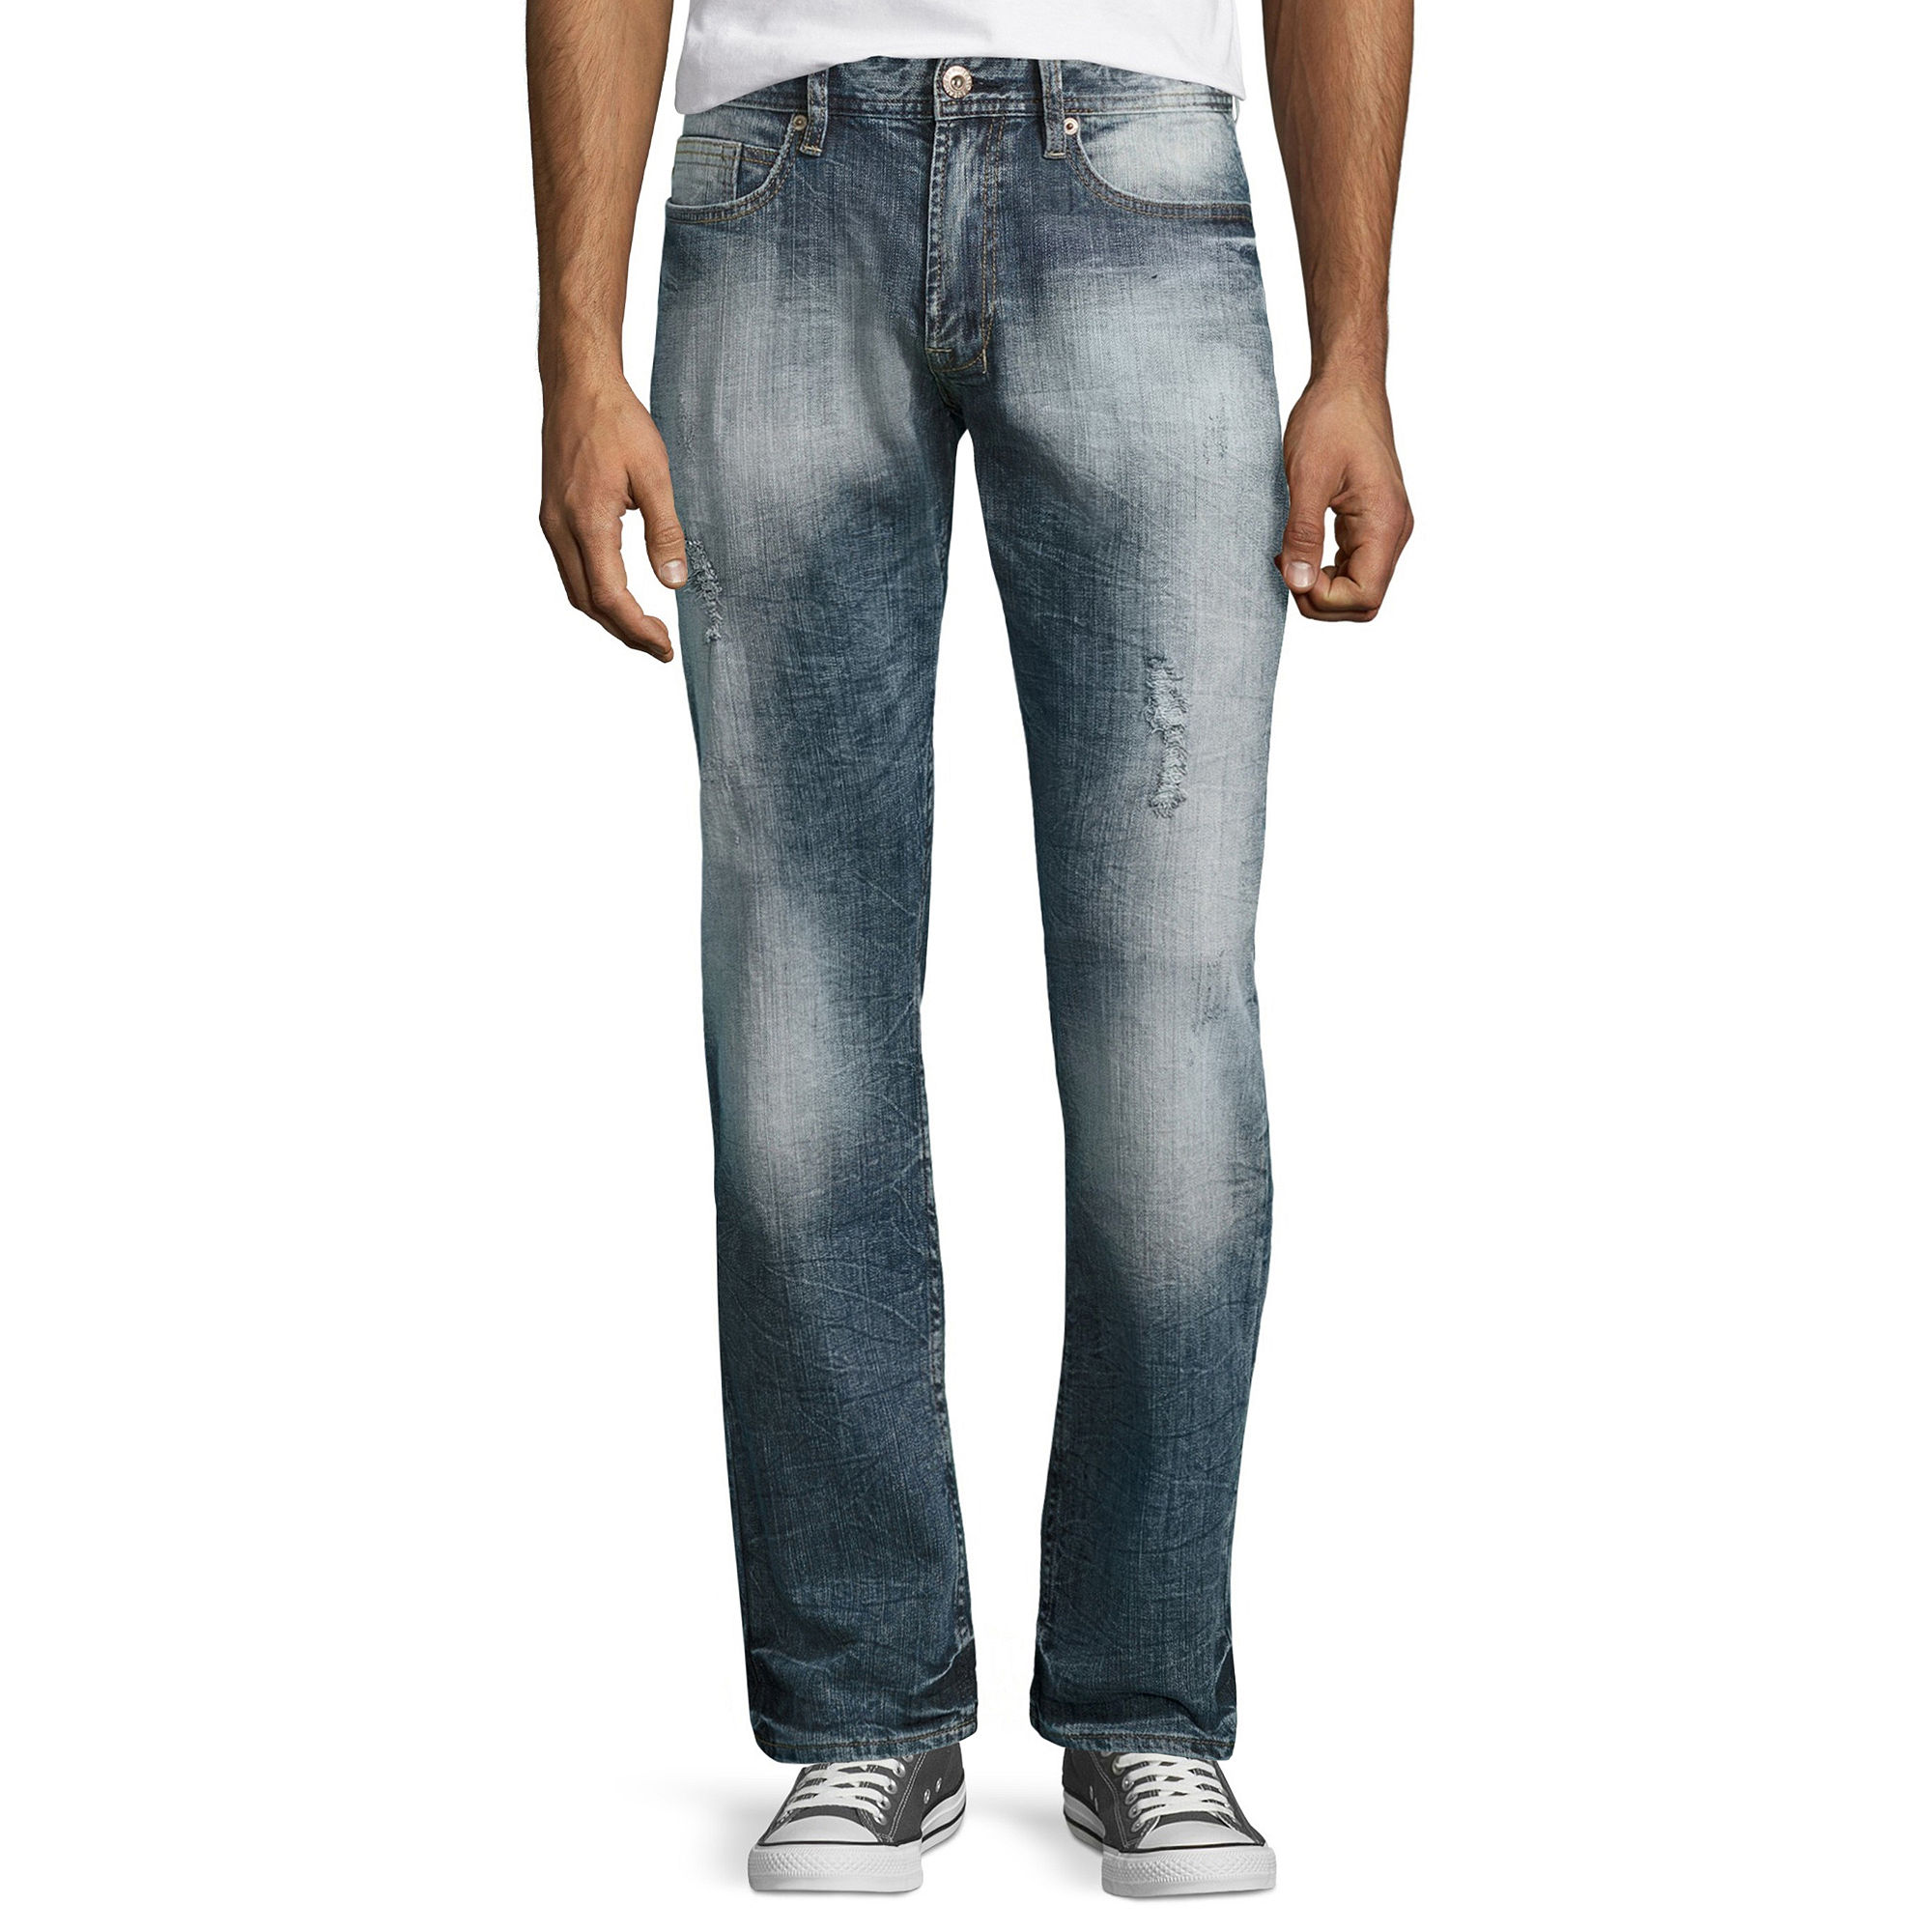 i jeans by Buffalo Taylor Jeans